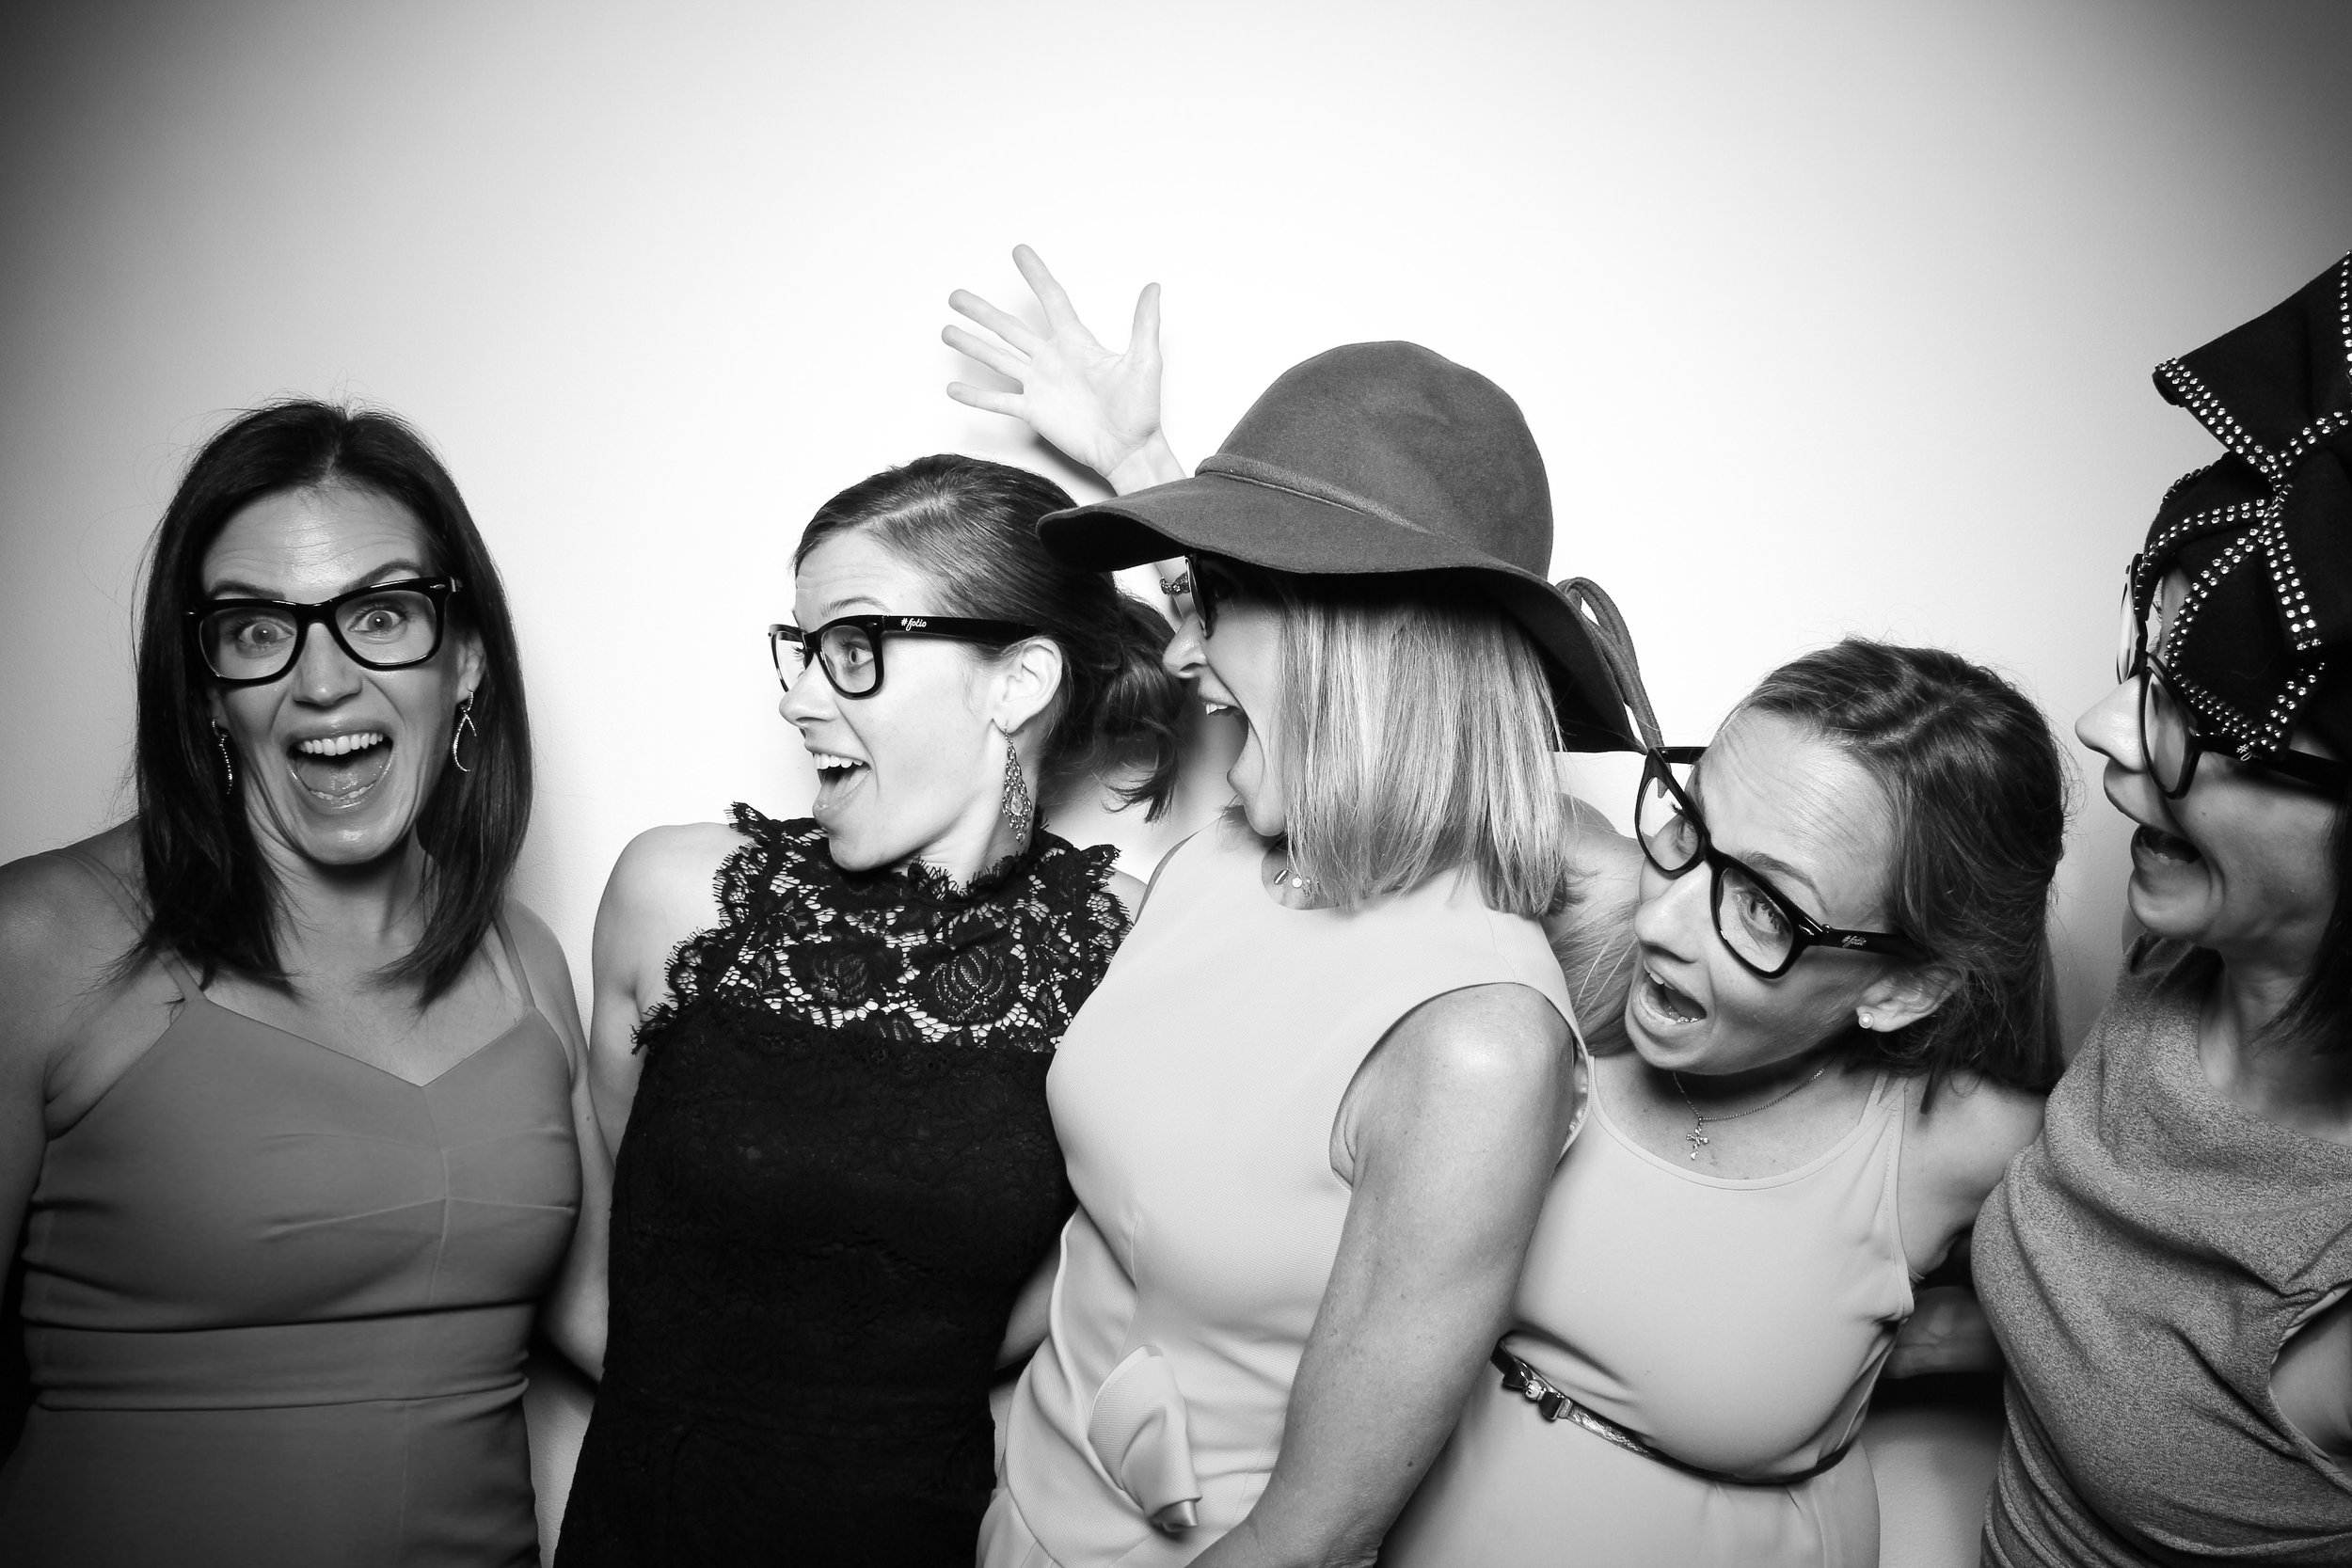 AIC_Modern_Wing_Griffin_Court_Wedding_Reception_Photo_Booth_08.jpg